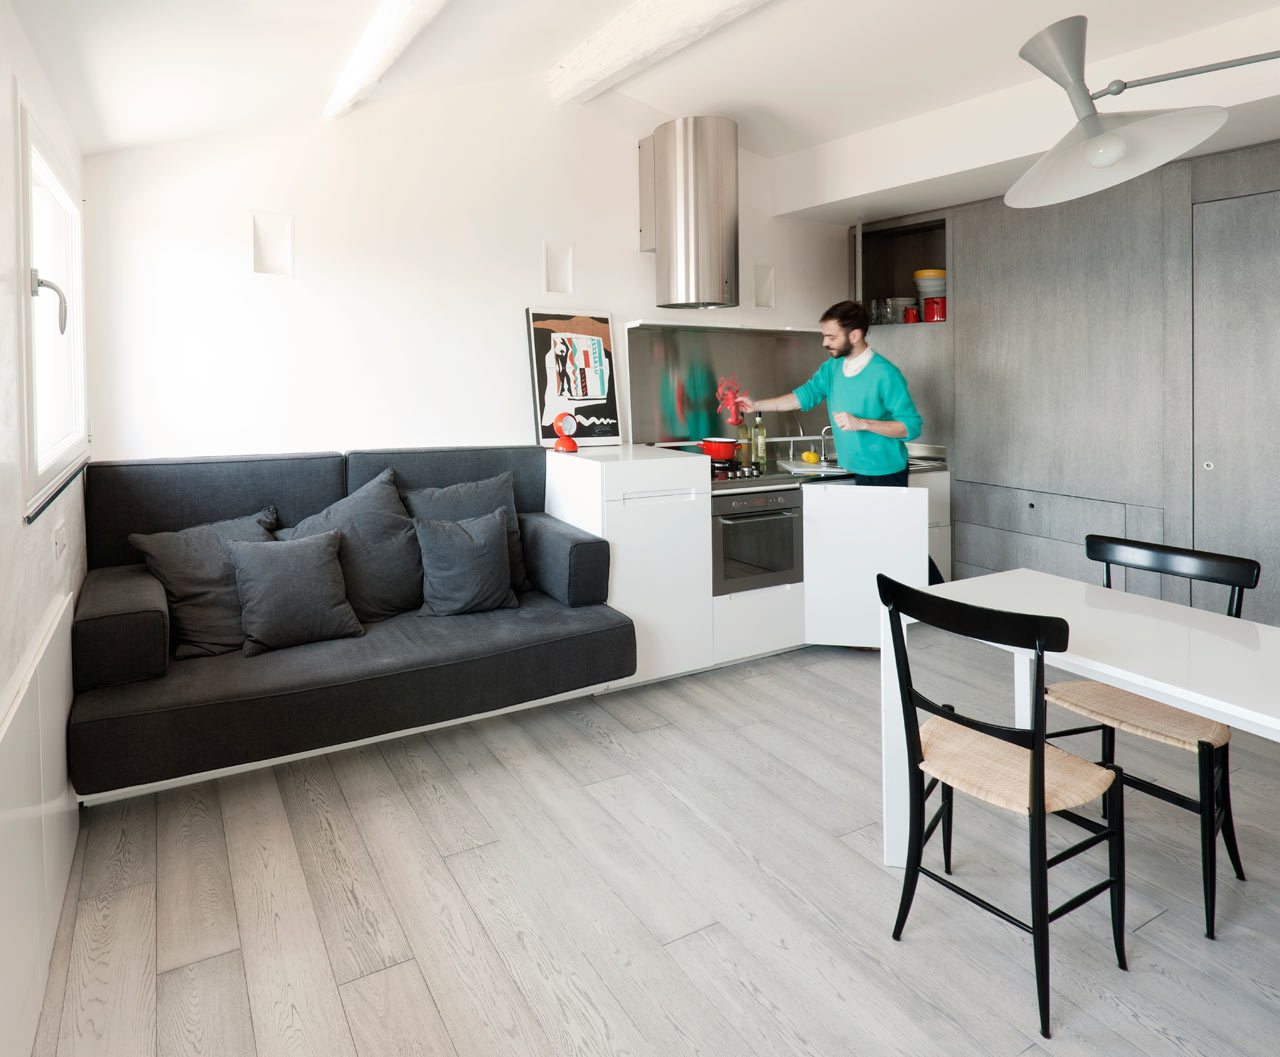 Harbour-Attic-Apartment-Gosplan-4